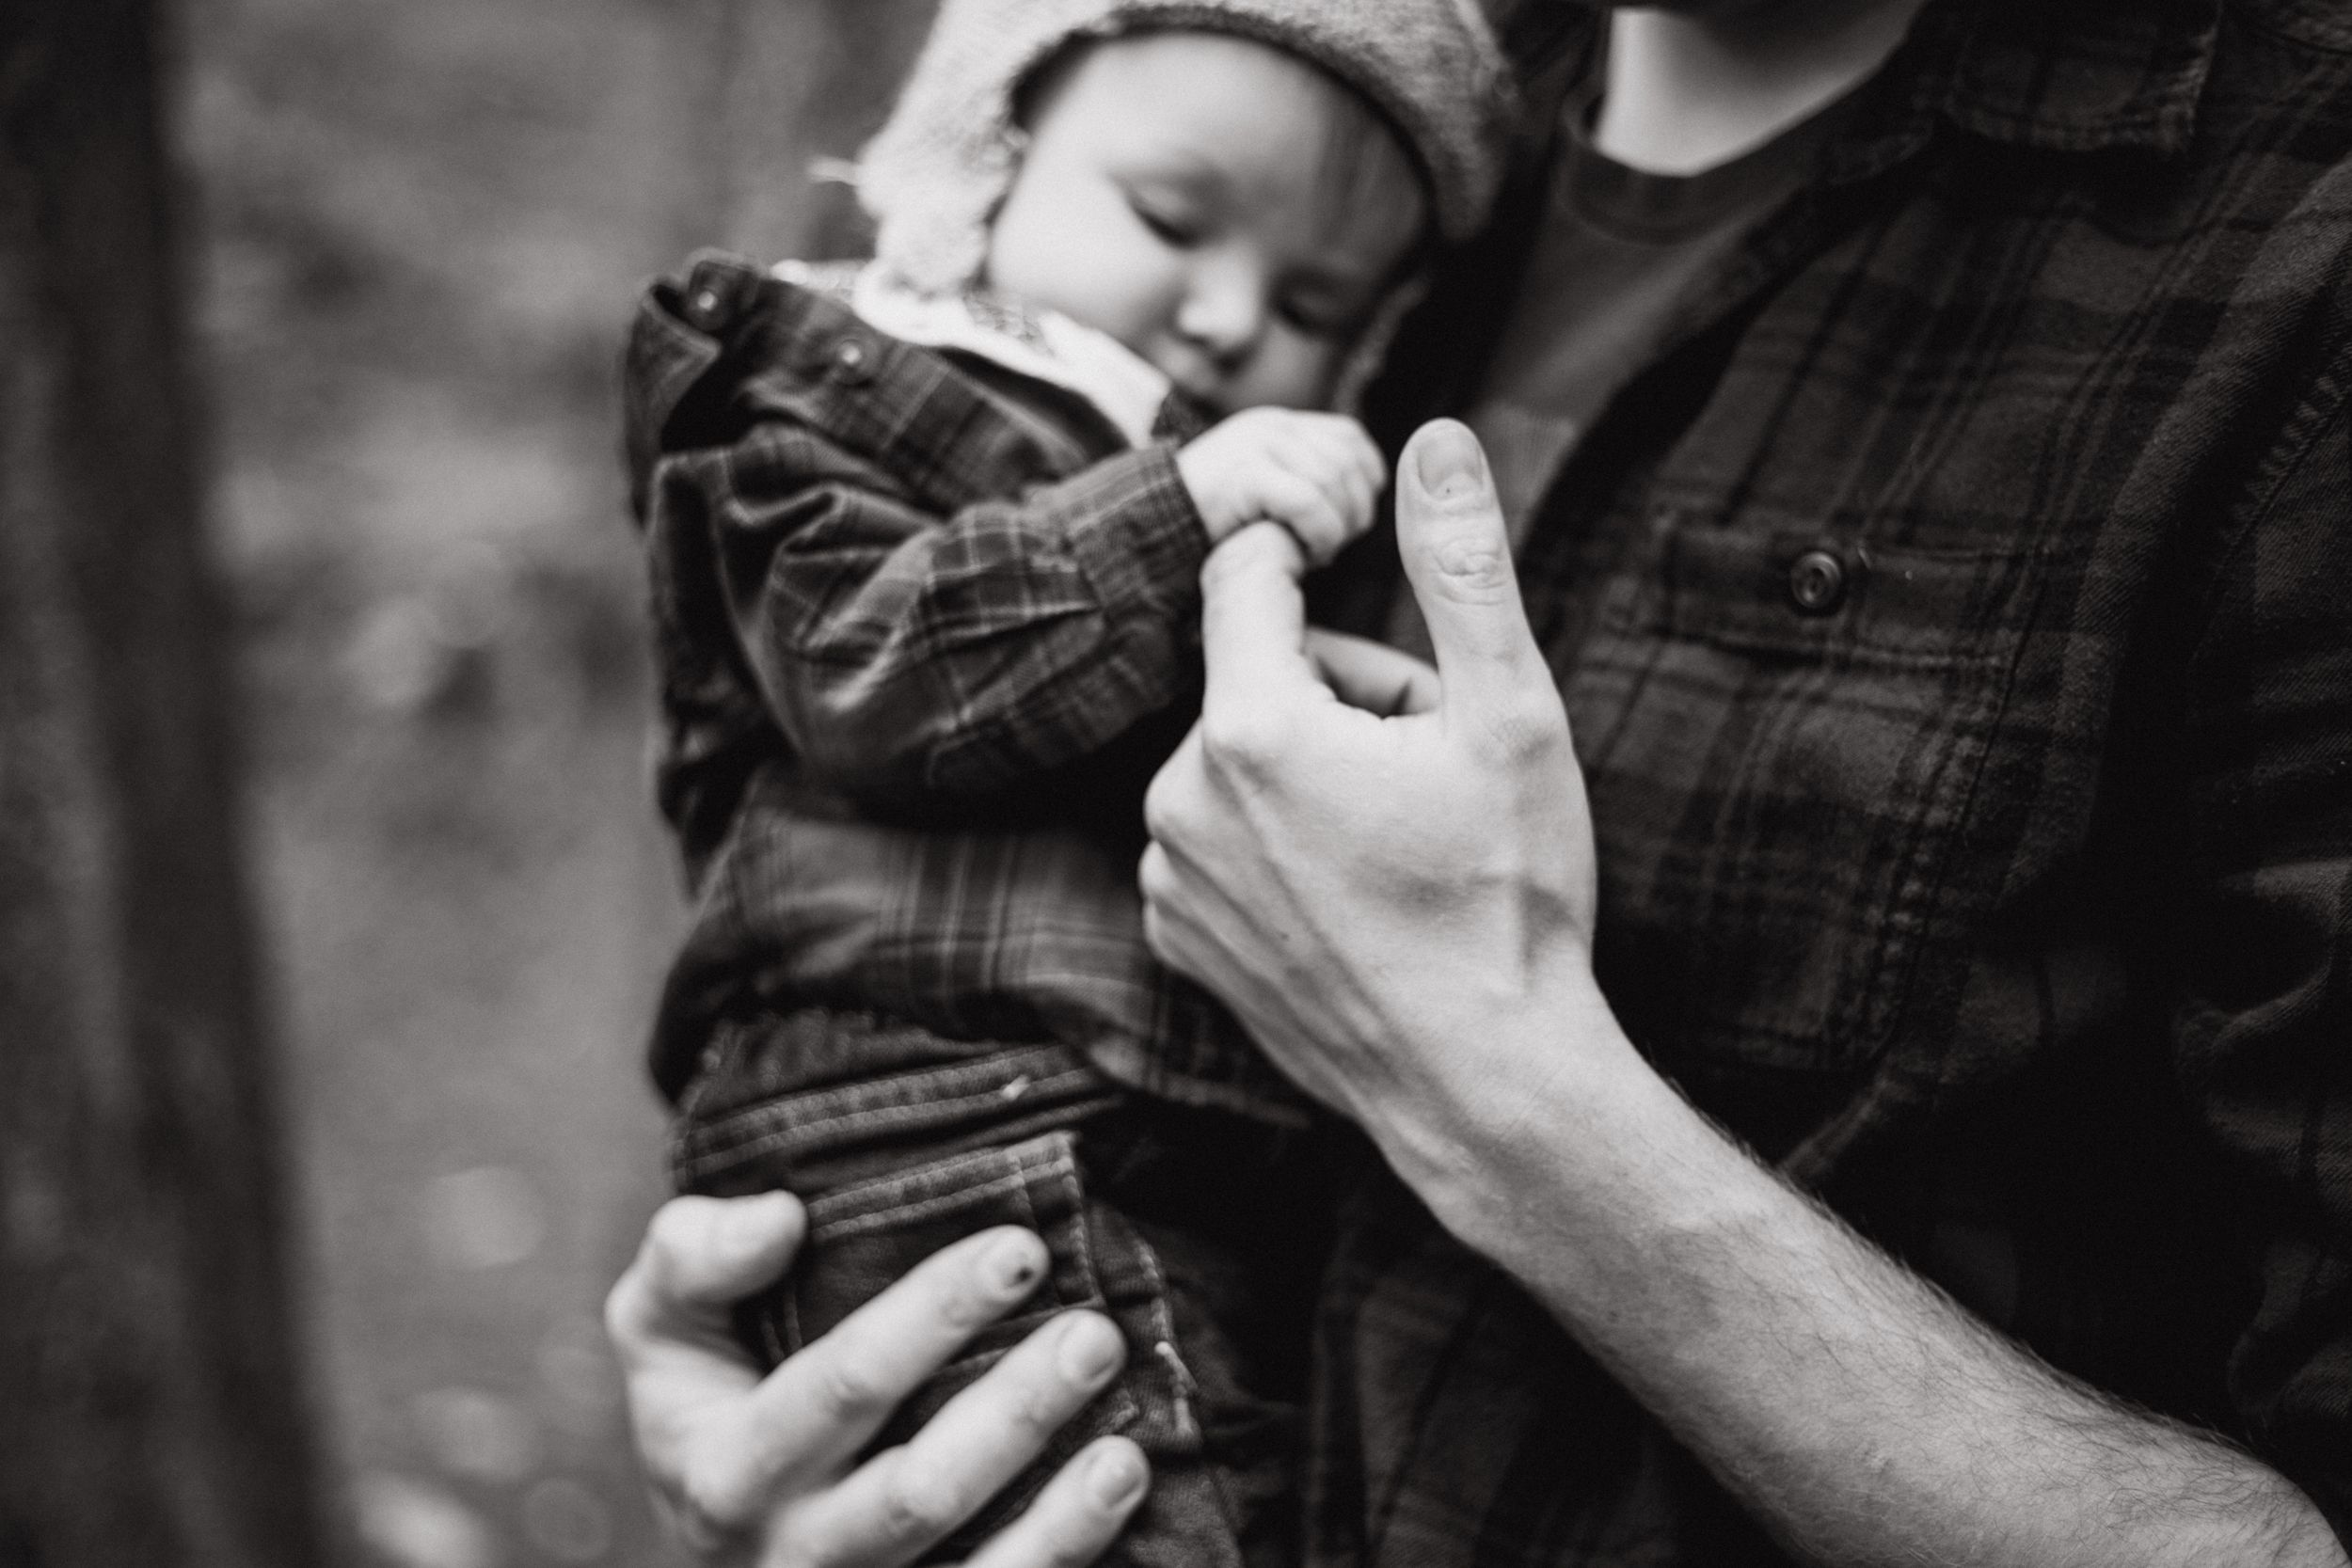 Baby boy grabs onto his dad's finger in black and white photo